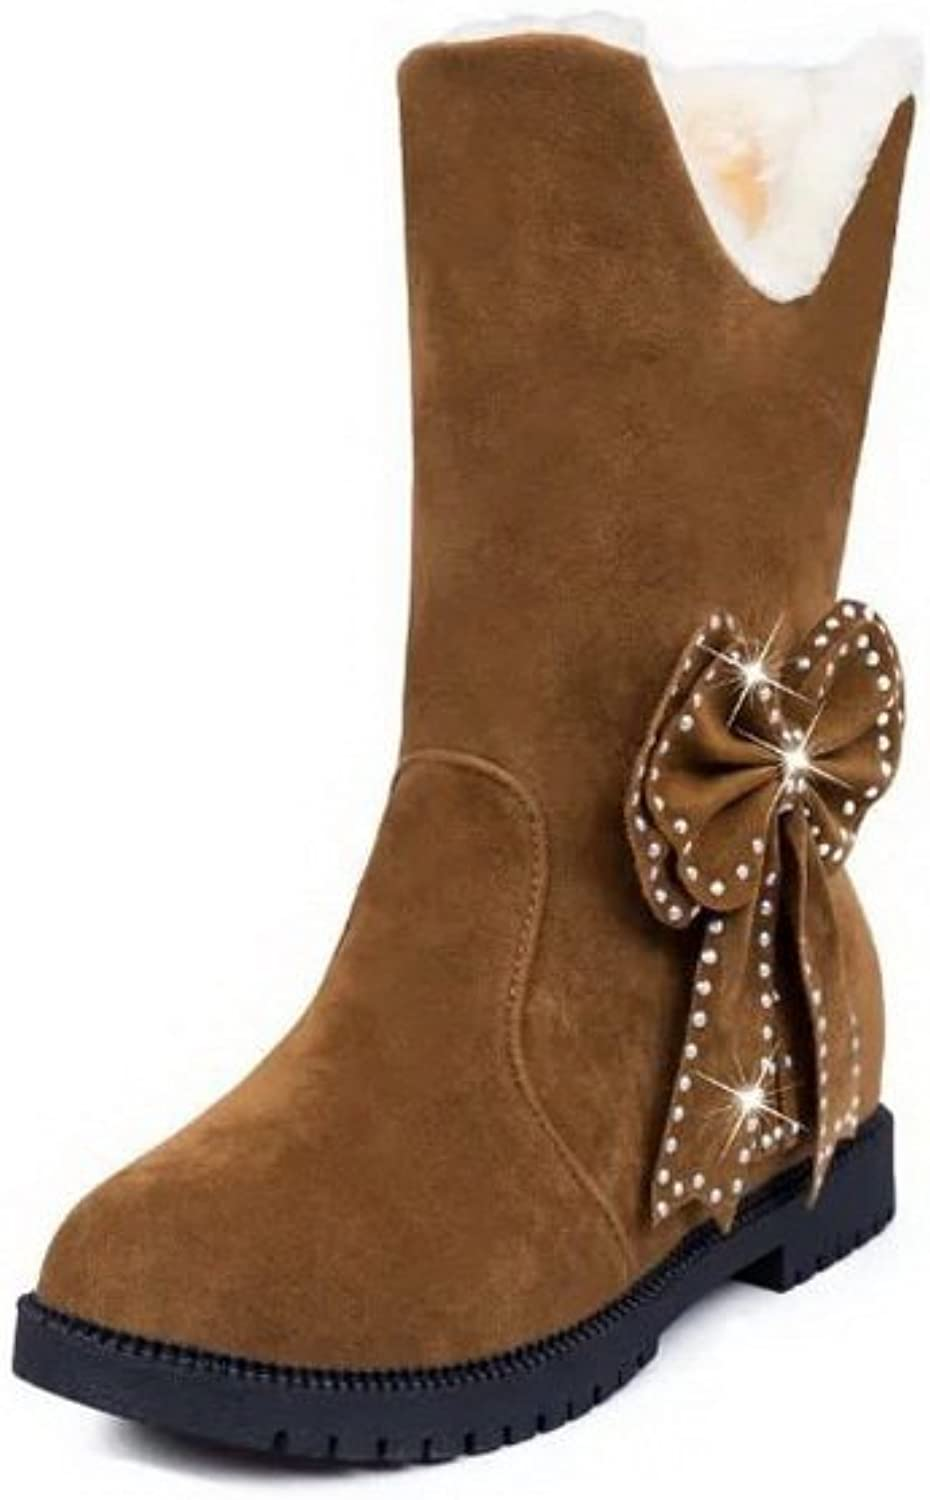 AdeeSu Womens Snow Boots Ankle-Cuff No-Heel Suede Boots SXC02410